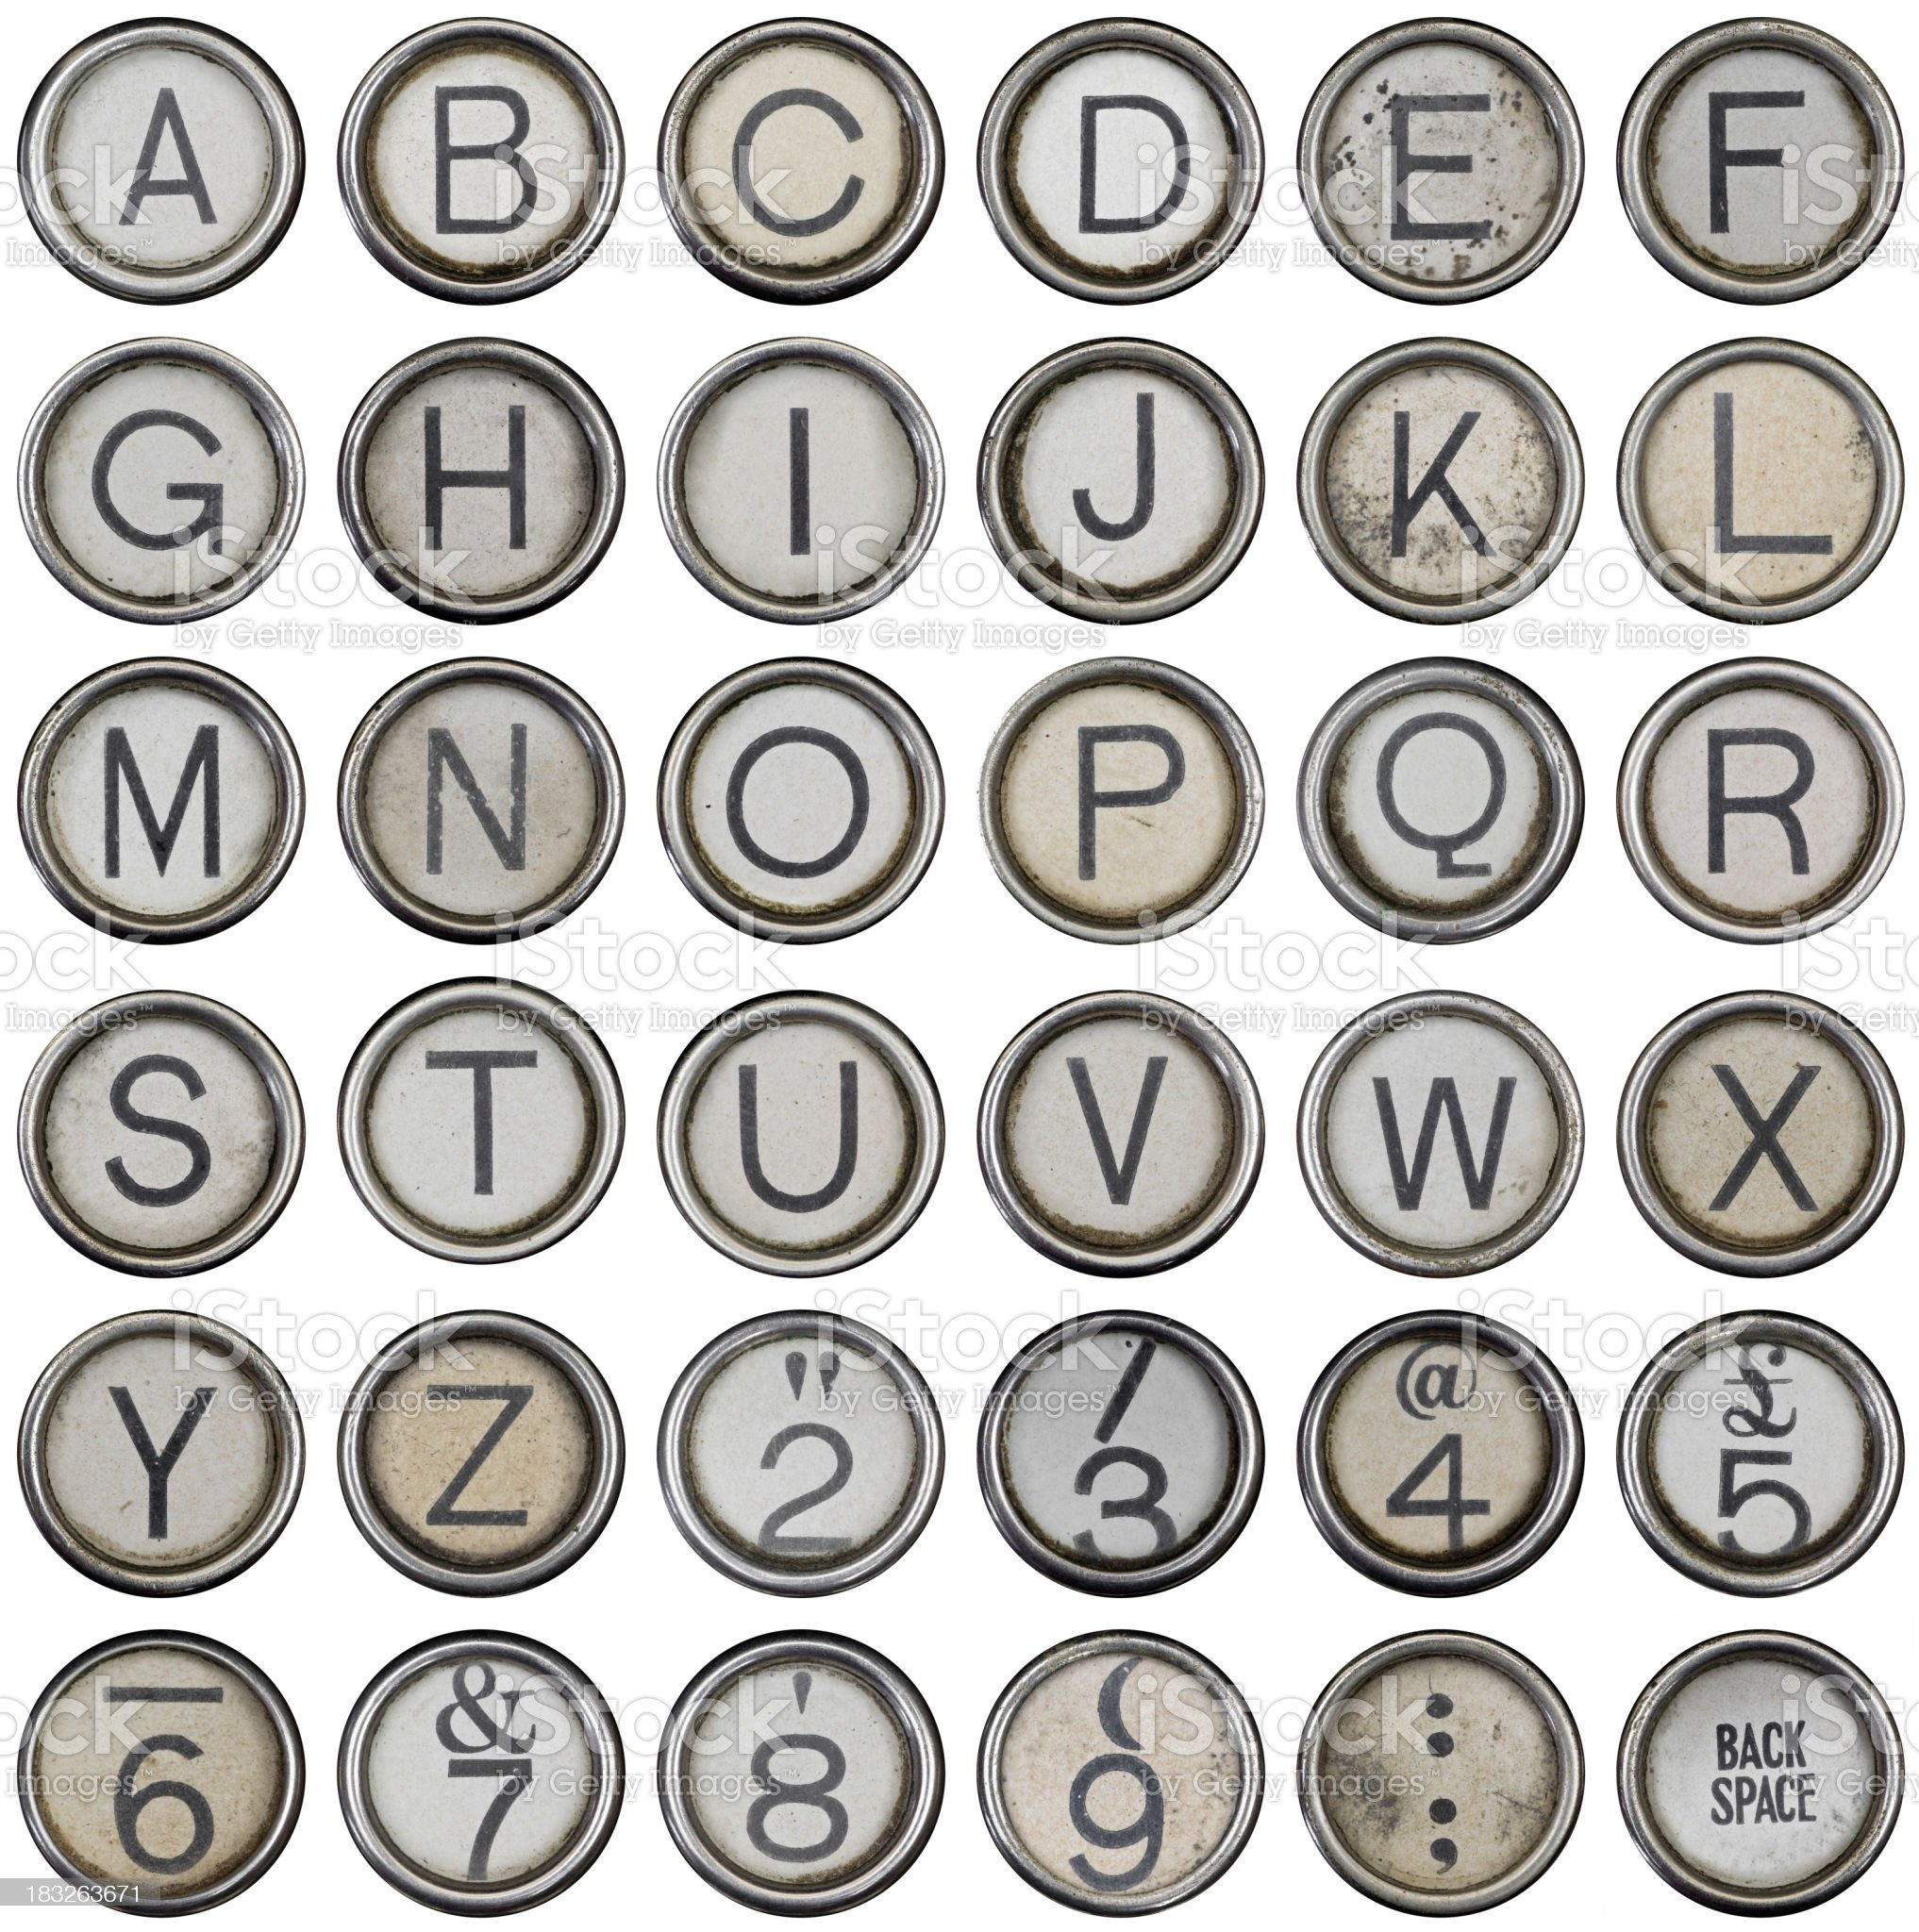 Full alphabet and numbers from grungey typewriter royalty-free stock photo